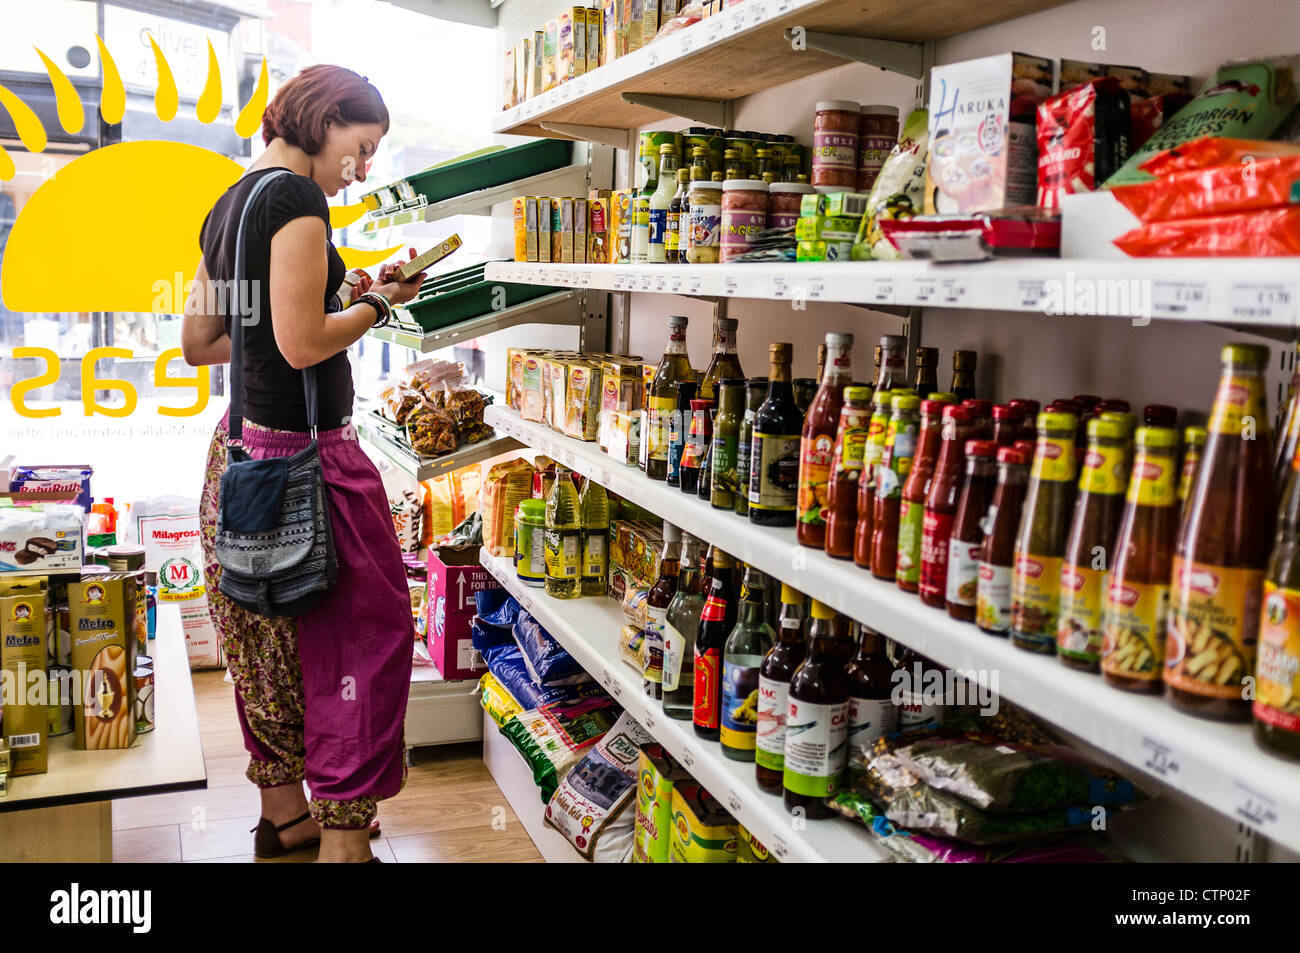 A young woman buying imported food at a delicatessen shop store , Aberystwyth Wales UK - Stock Image